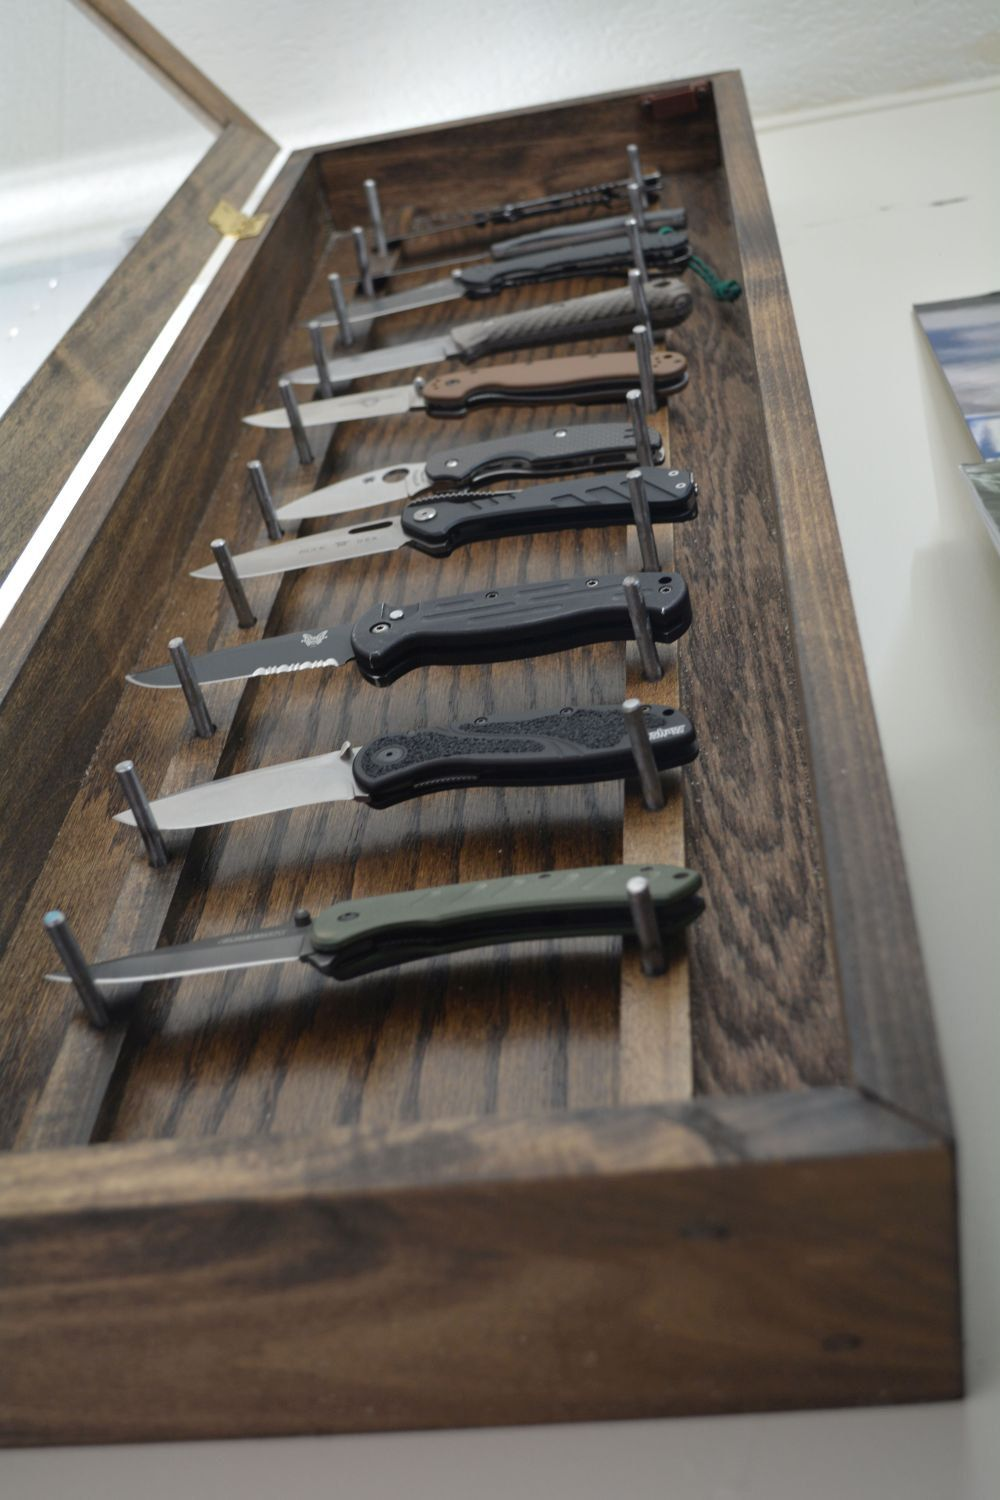 Knife Display Case | Wall Mounted Knife Display Cabinet | Knife ...